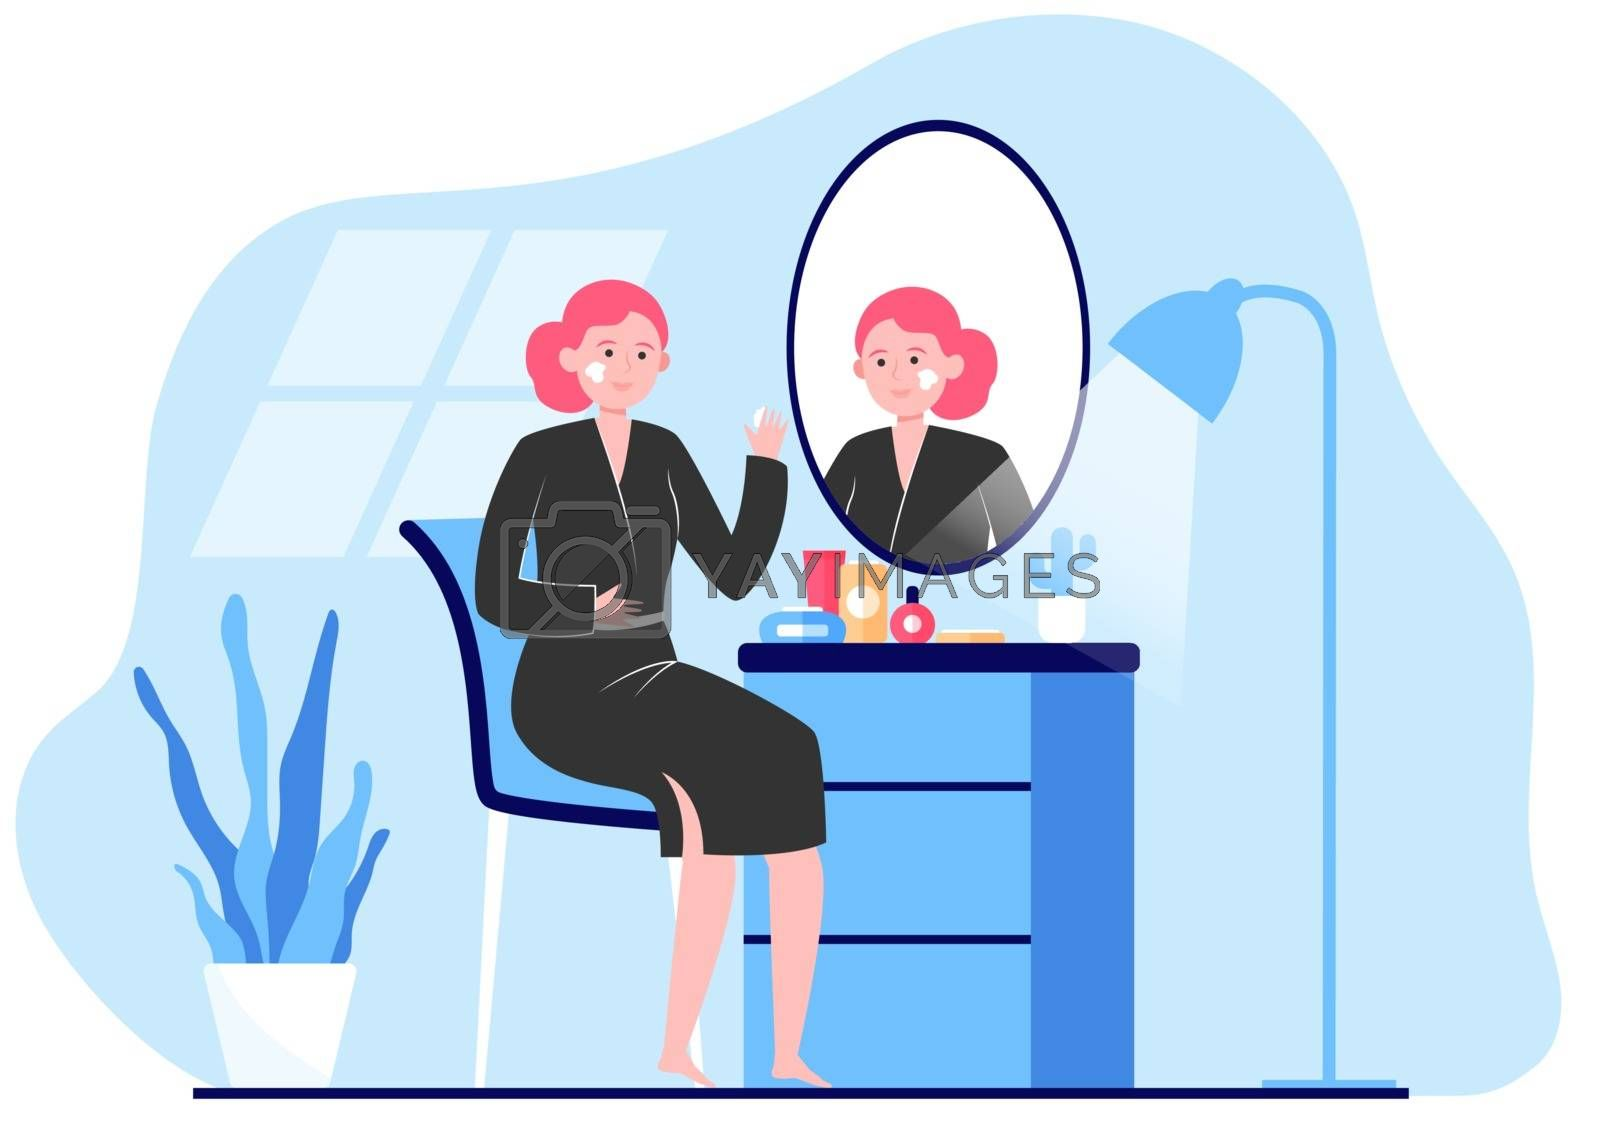 Woman applying cream to face skin at mirror. Lady practicing skincare routine in her bathroom. Vector illustration for morning hygiene, beauty care, face washing concept